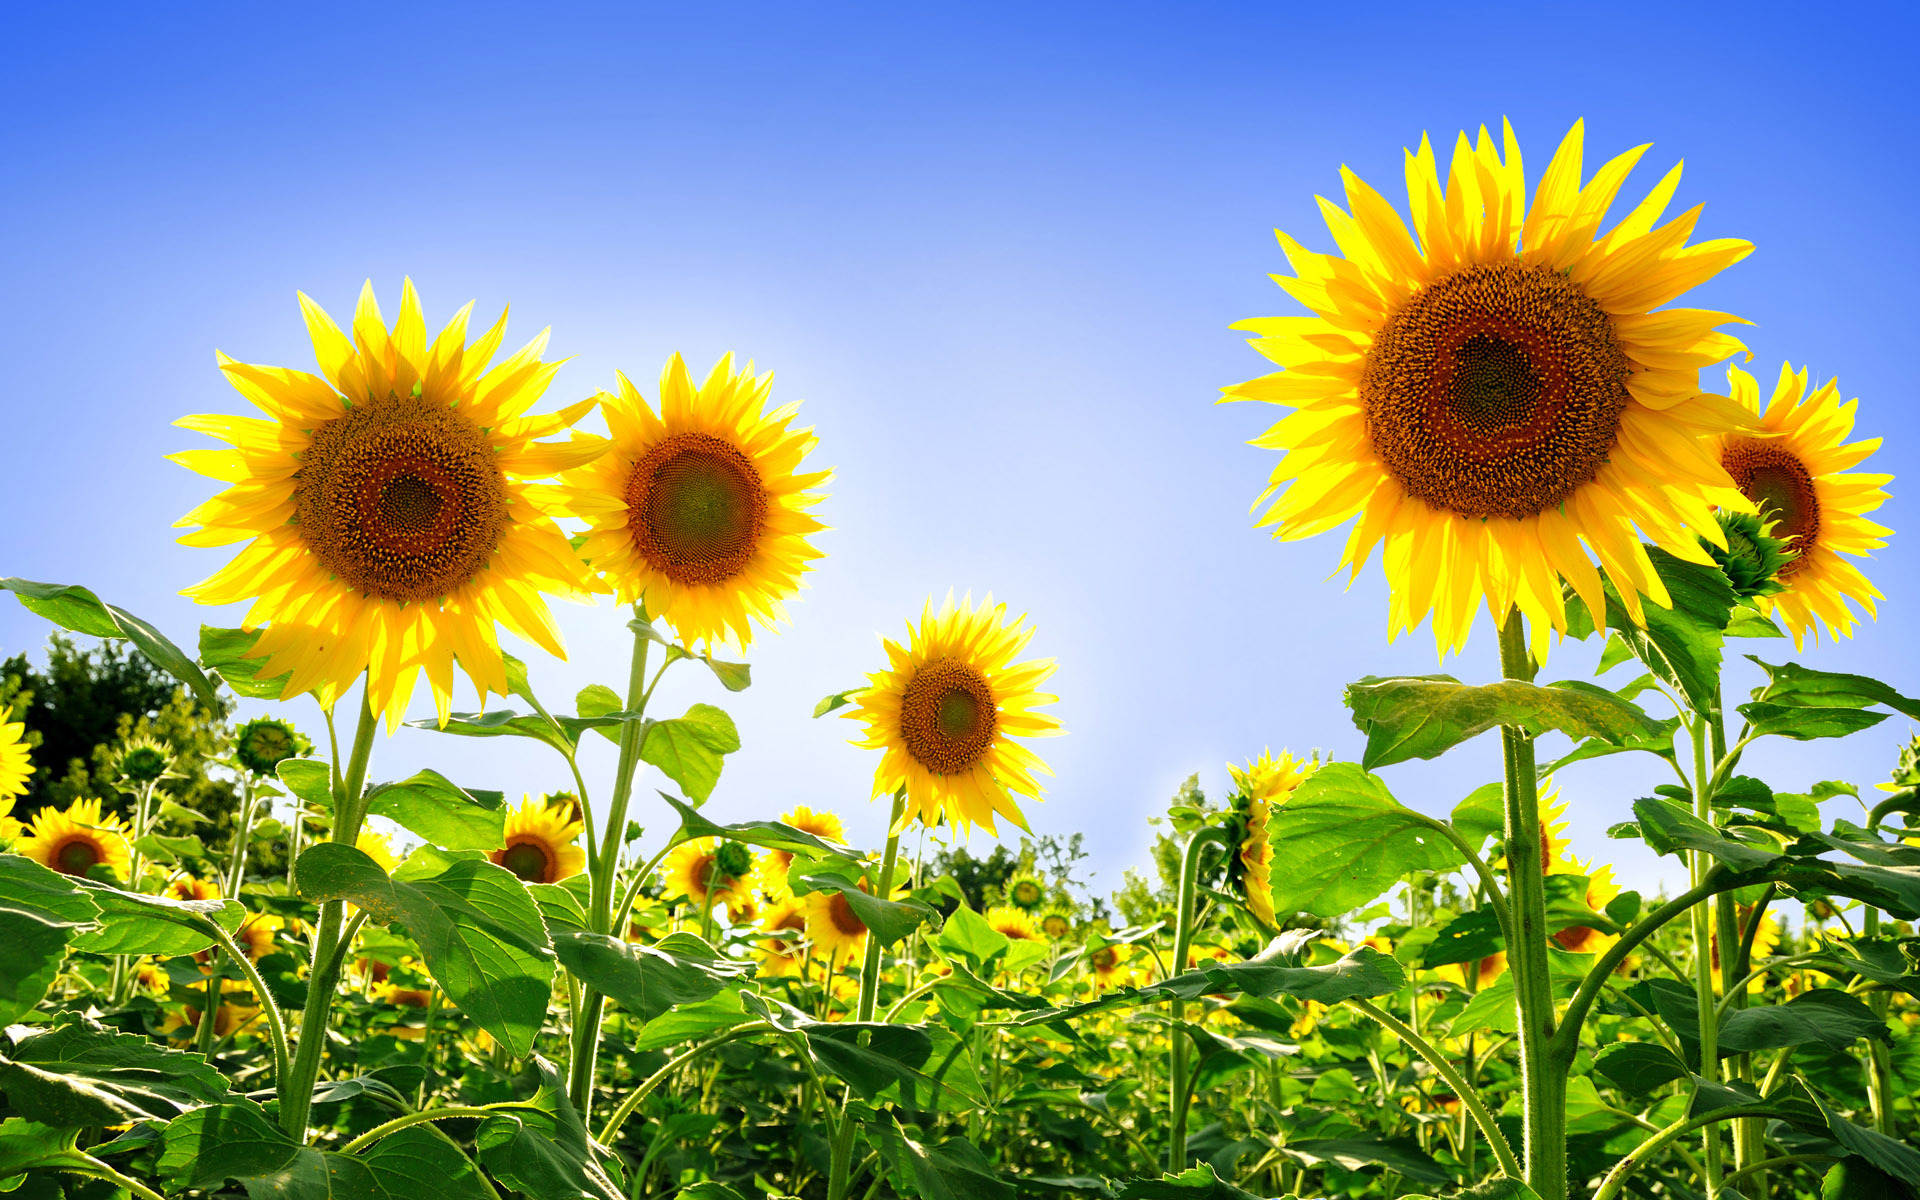 3d Sunflower Wallpaper Sunflower Pictures 21592 1920x1200 Px Hdwallsource Com